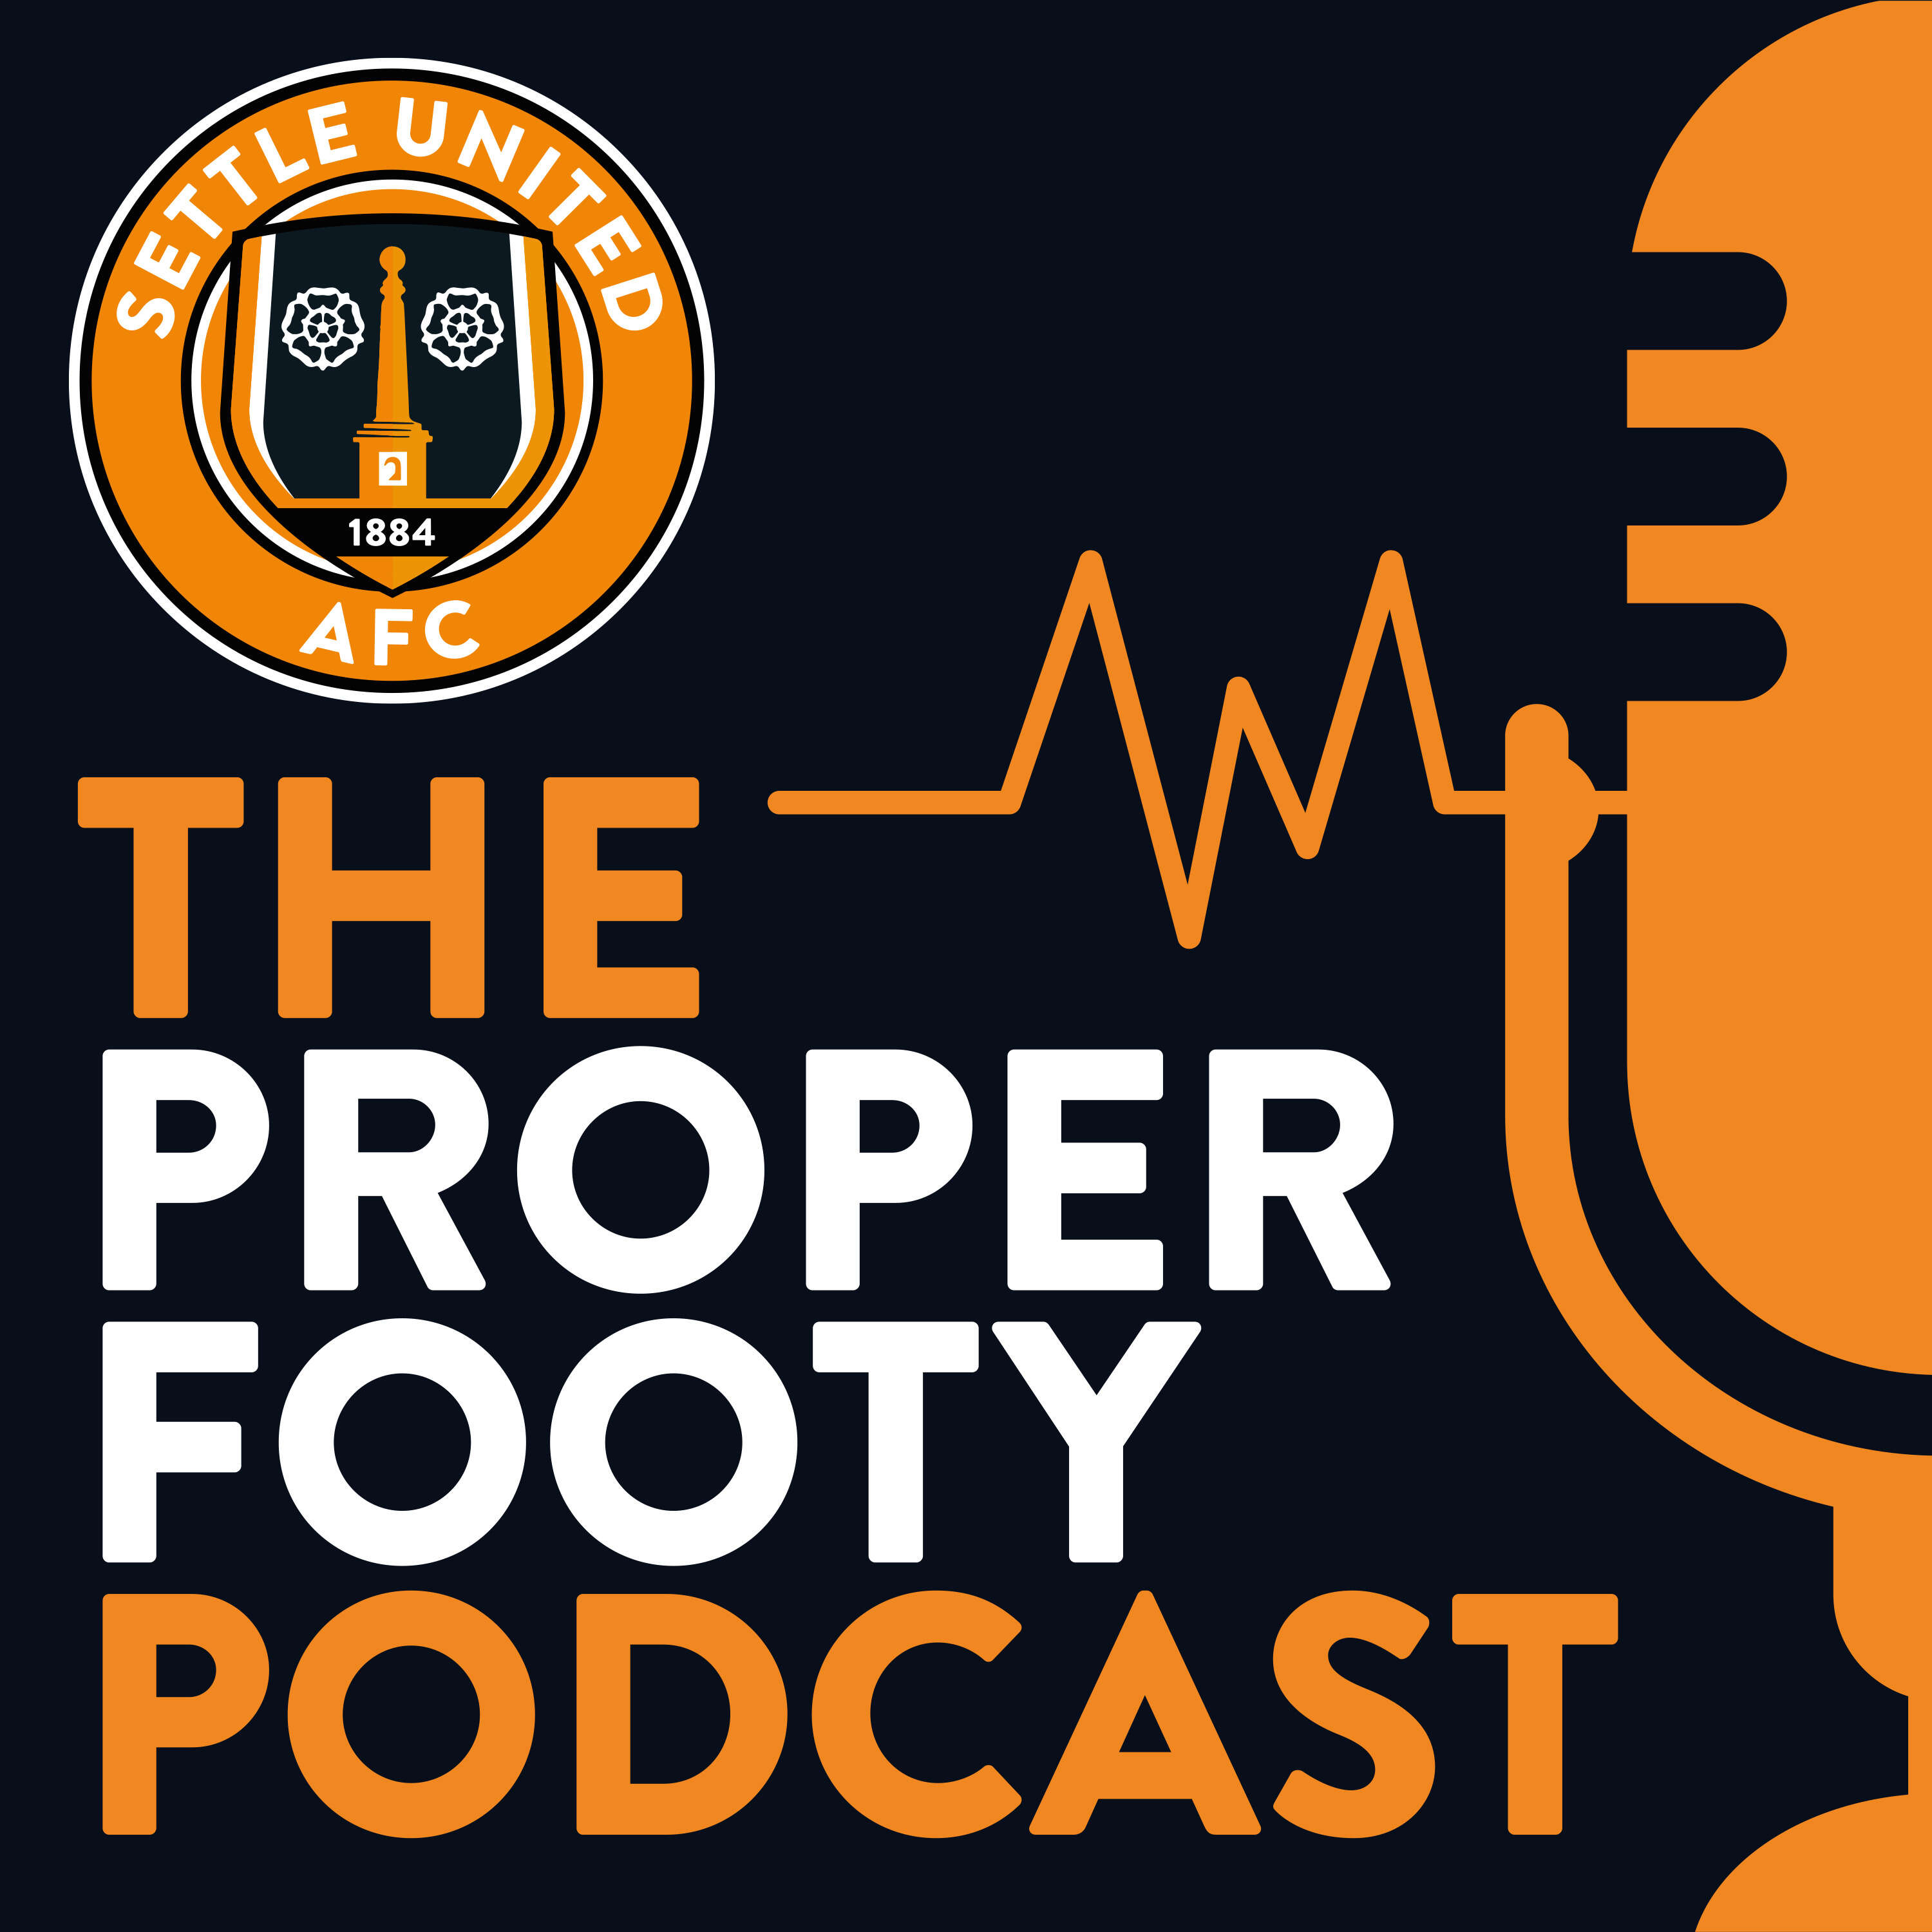 The Proper Footy Podcast